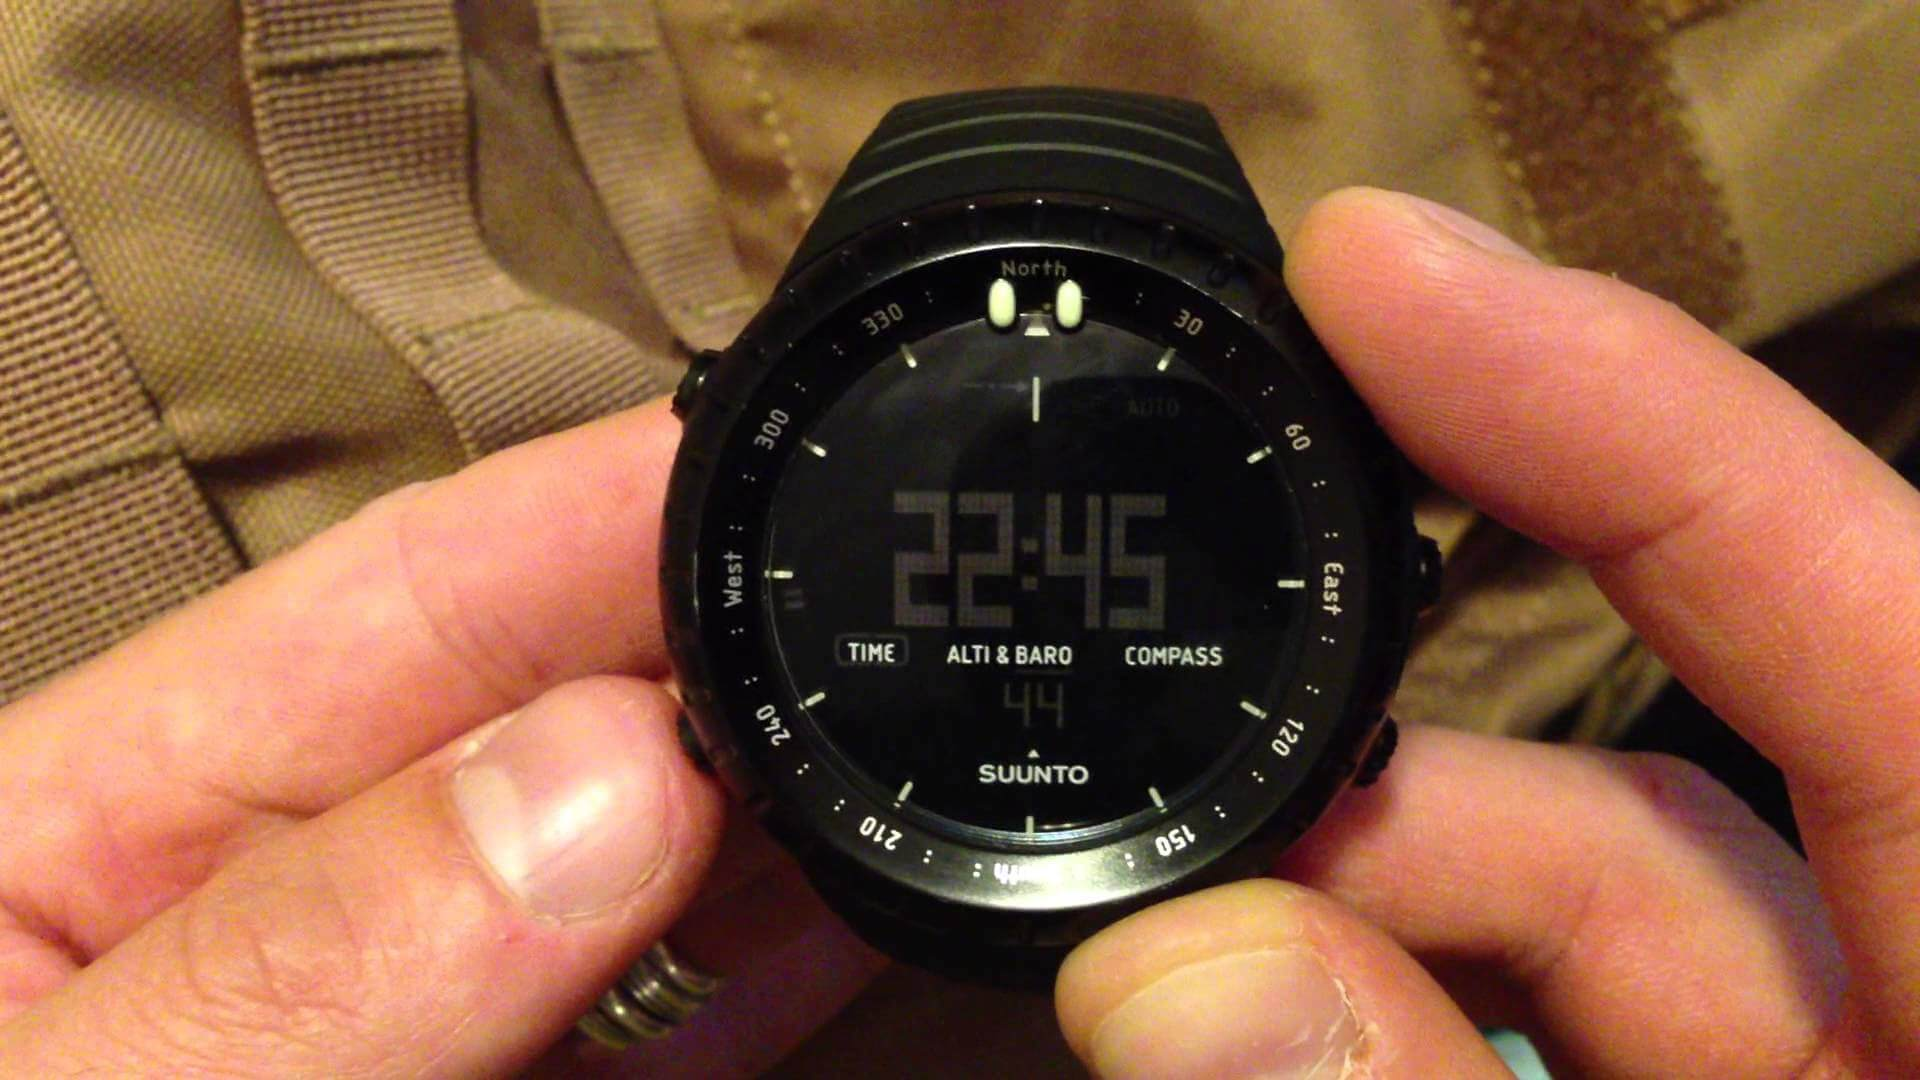 watch altimeter altitude ebay genie stores von bereitgestellt watches on de hands pin breva